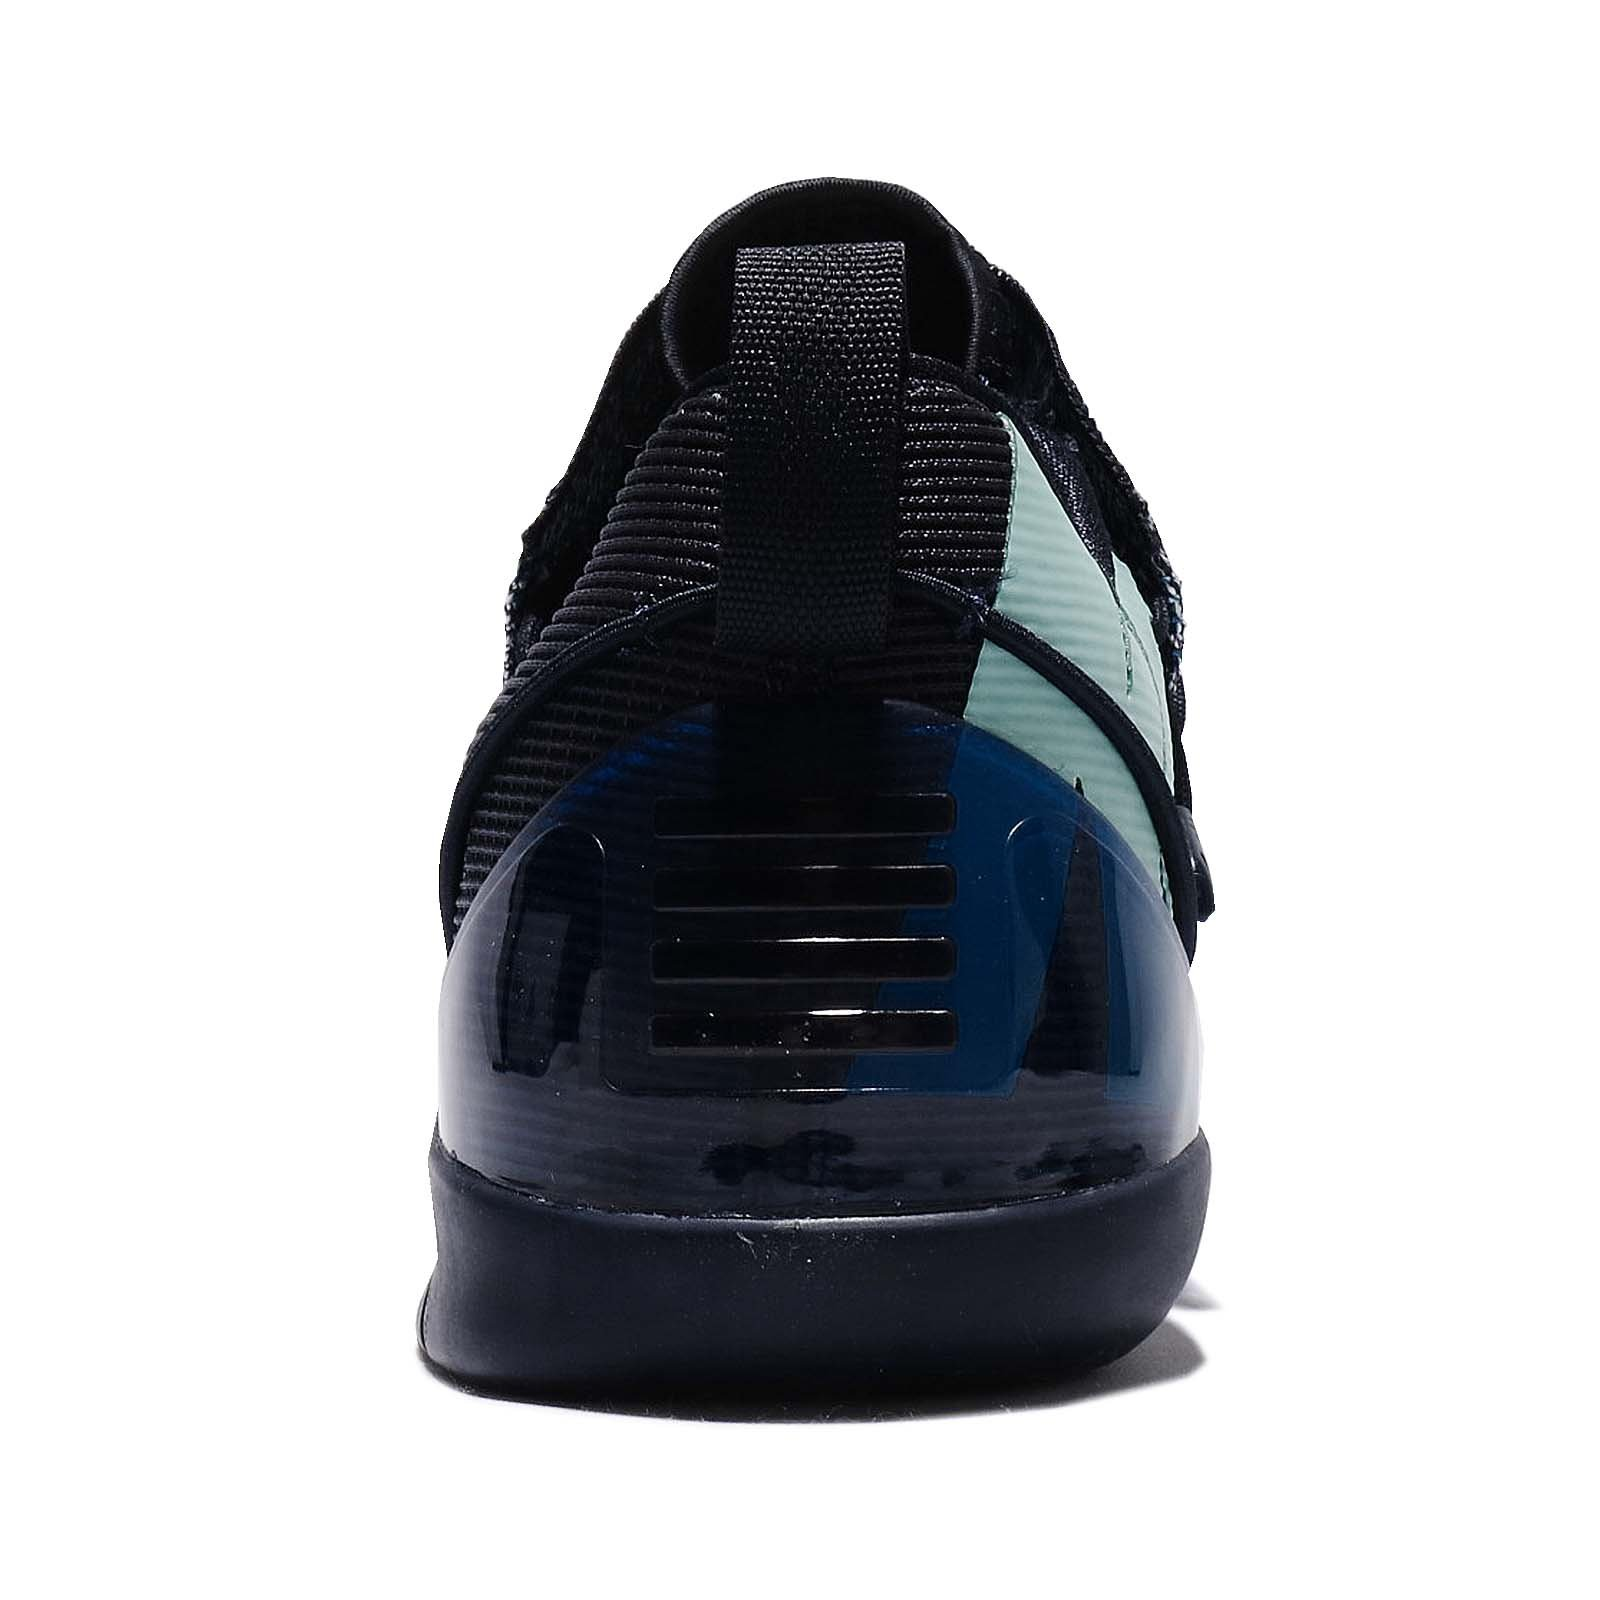 Nike Men's Kobe A.D. NXT AD, Mambacurial FC Barcelona College Navy Igloo, 9.5 M US by NIKE (Image #3)